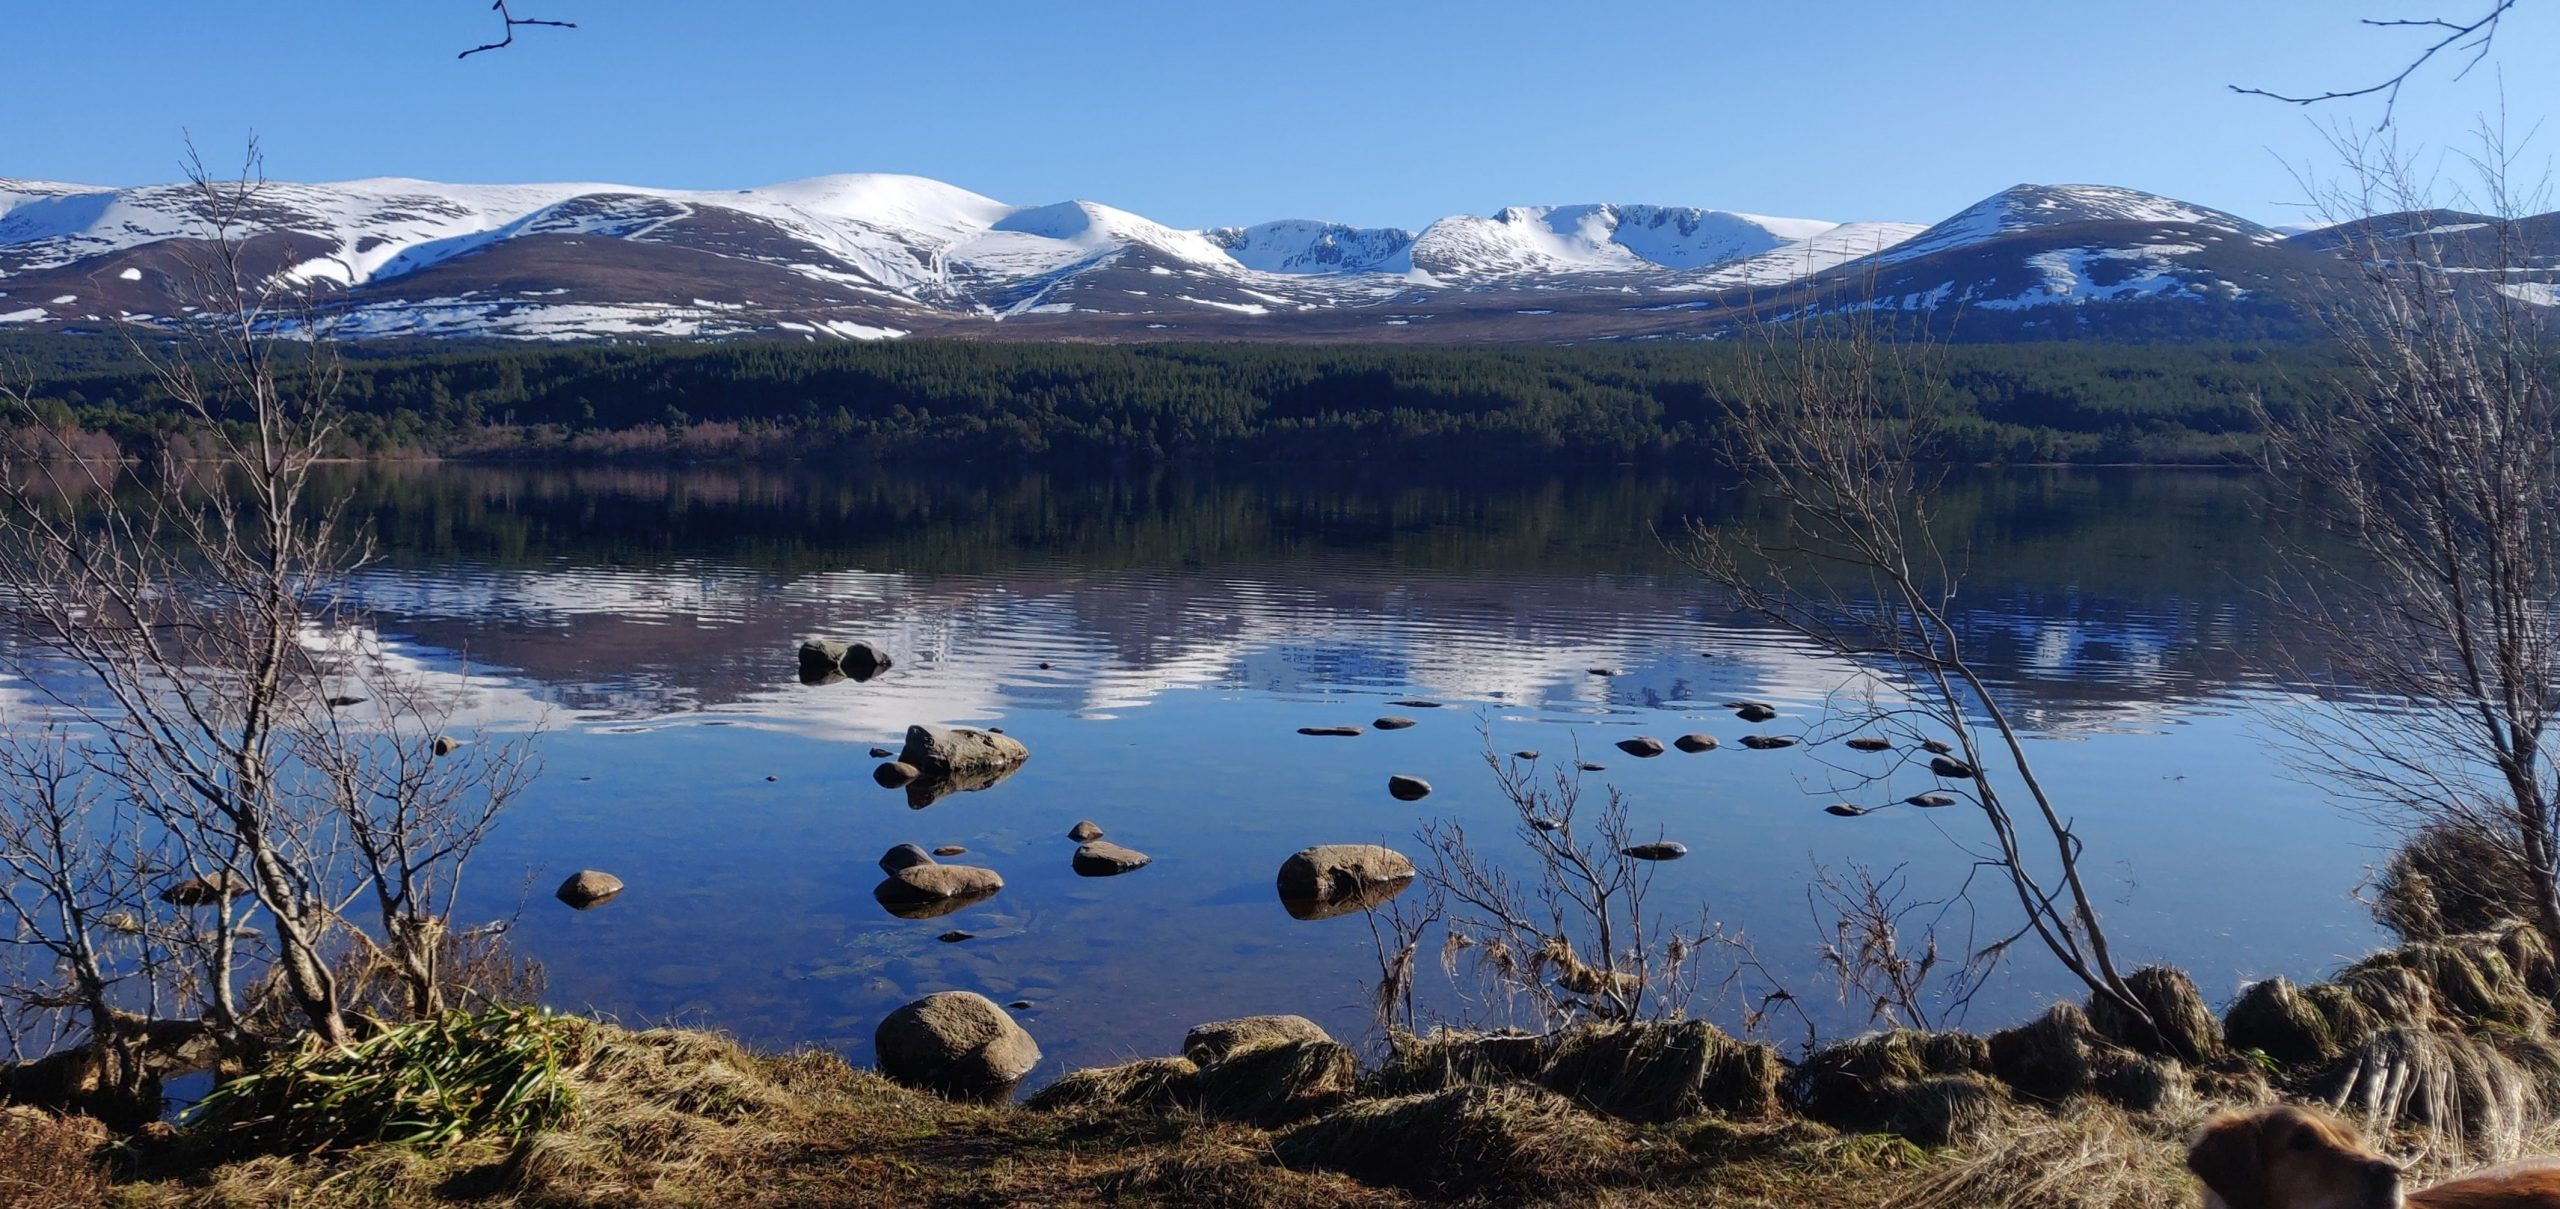 View across Loch Morlich to the Cairngorms